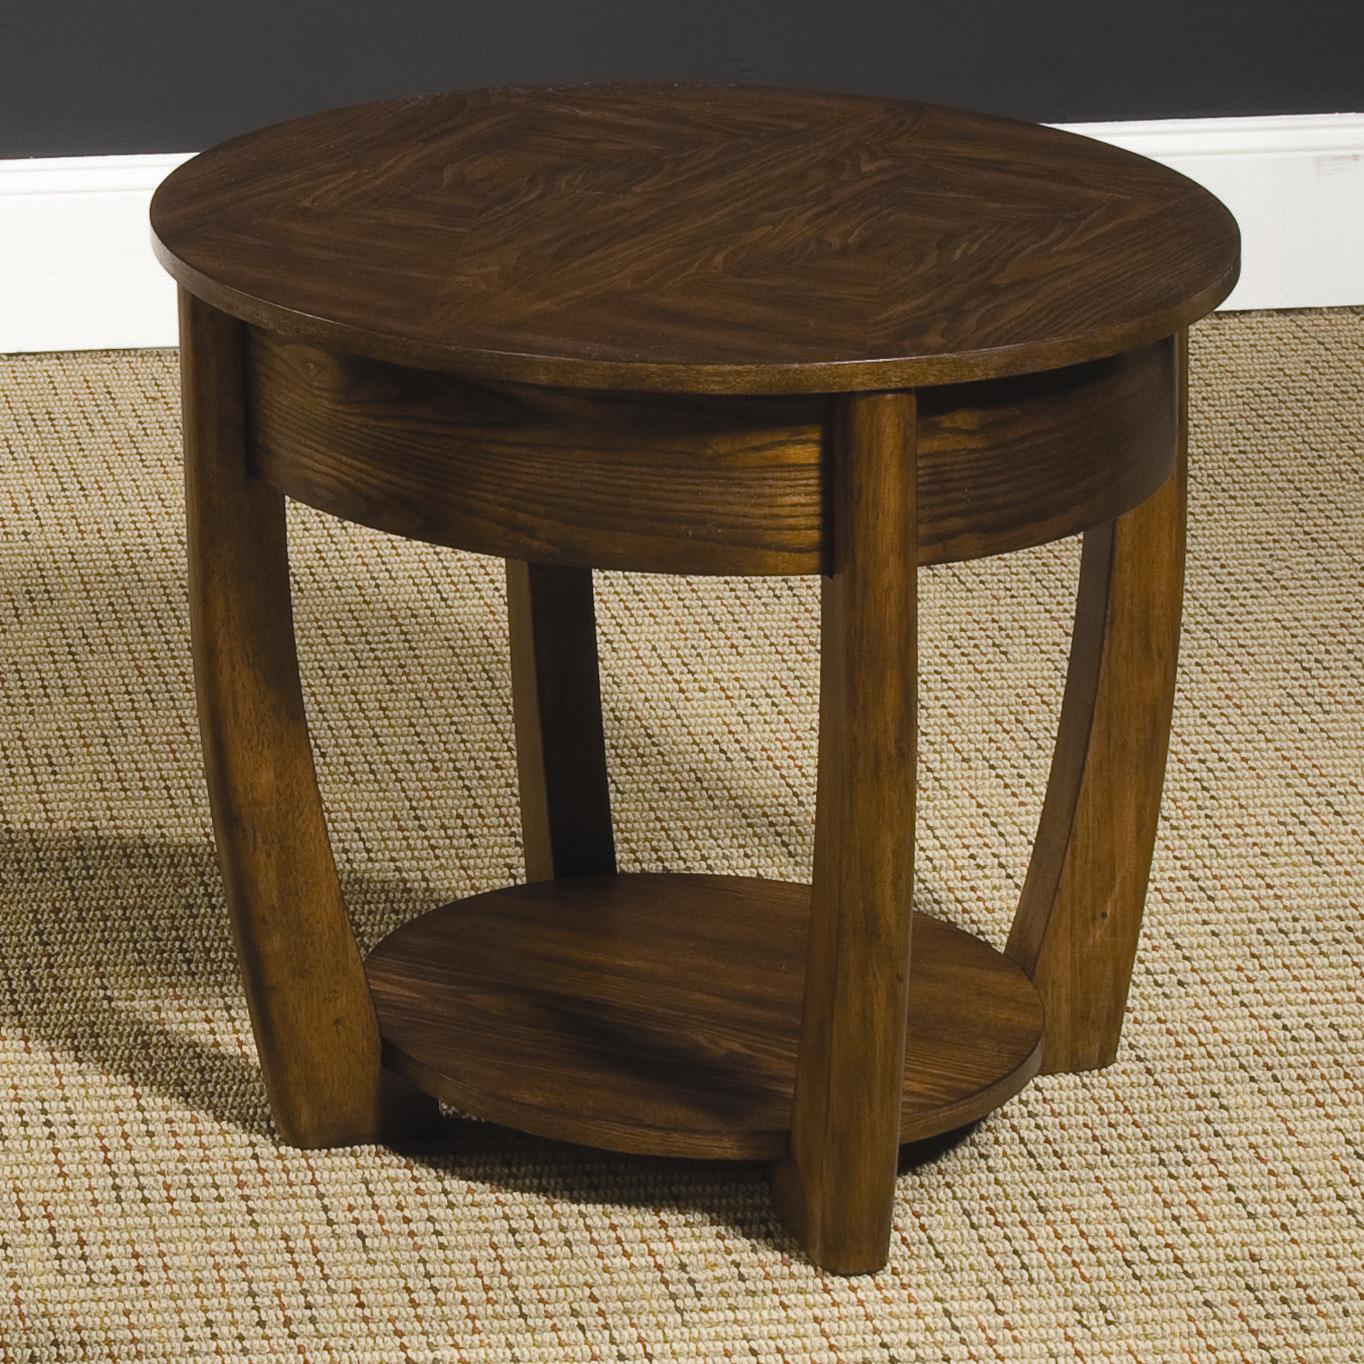 Hammary Concierge Round End Table - Item Number: T3001835-00